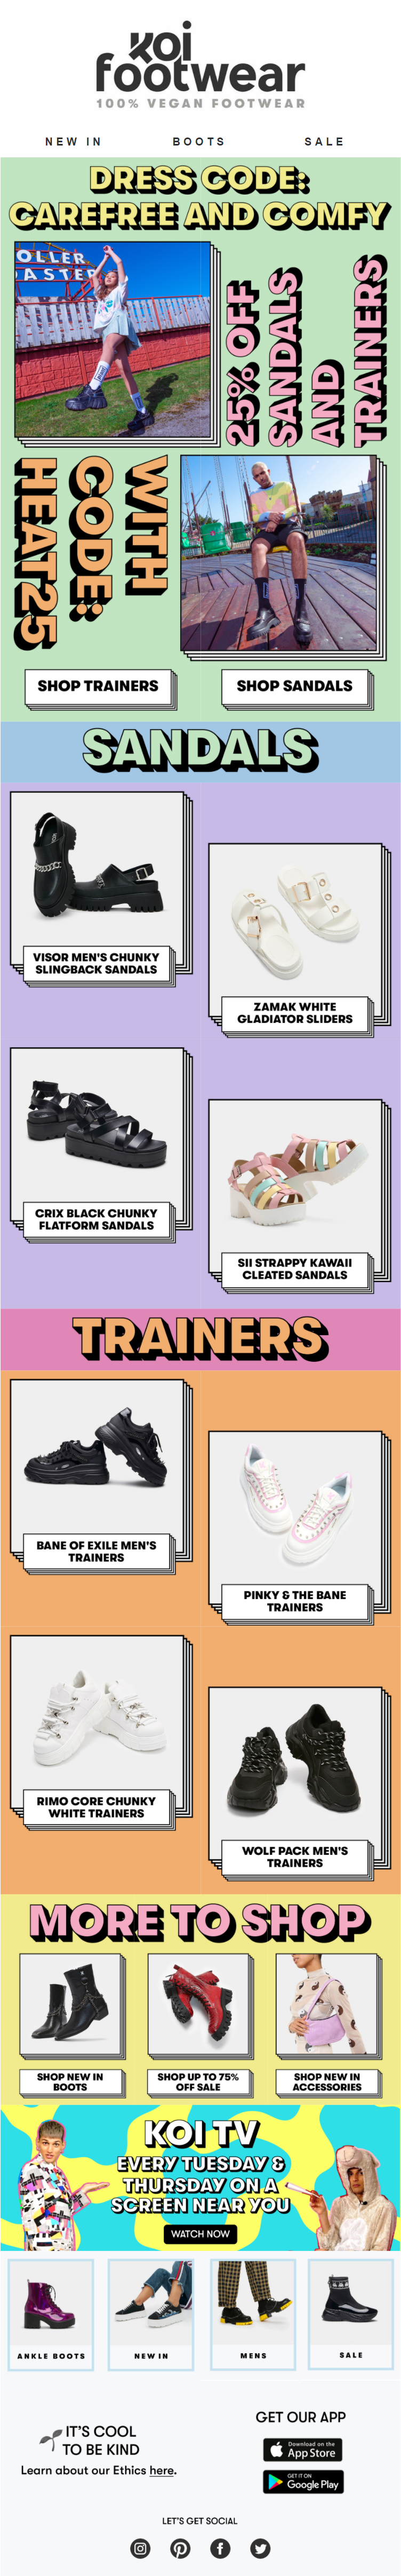 koi-footwear-are-you-ready-for-the-heatwave